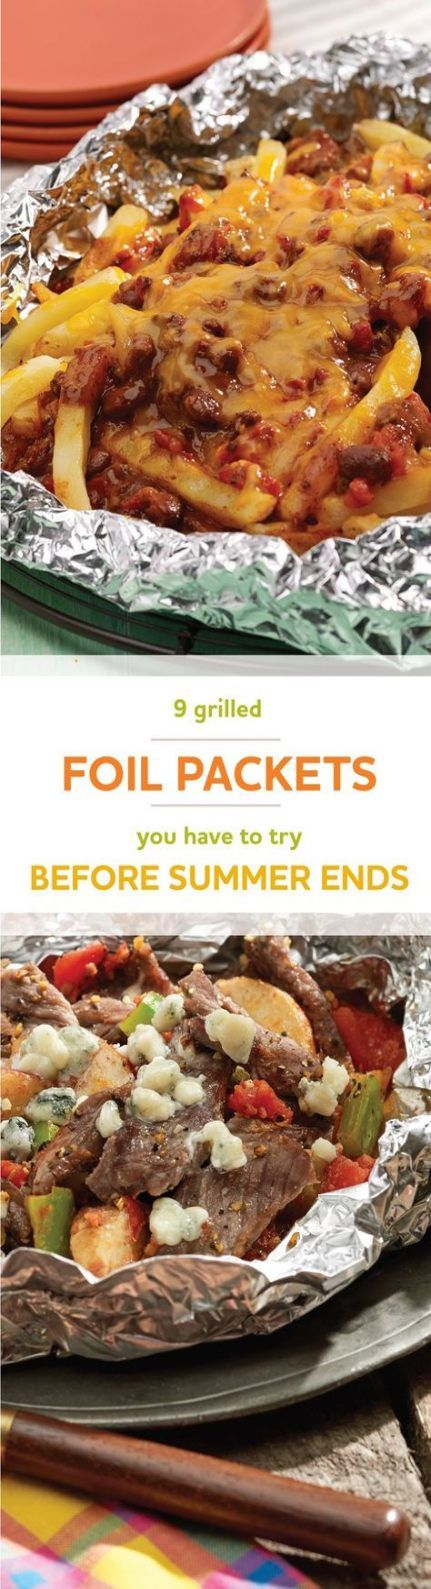 Food Ideas for Camping in Summer Aluminum Packages 36+ Ideas   – {camping}